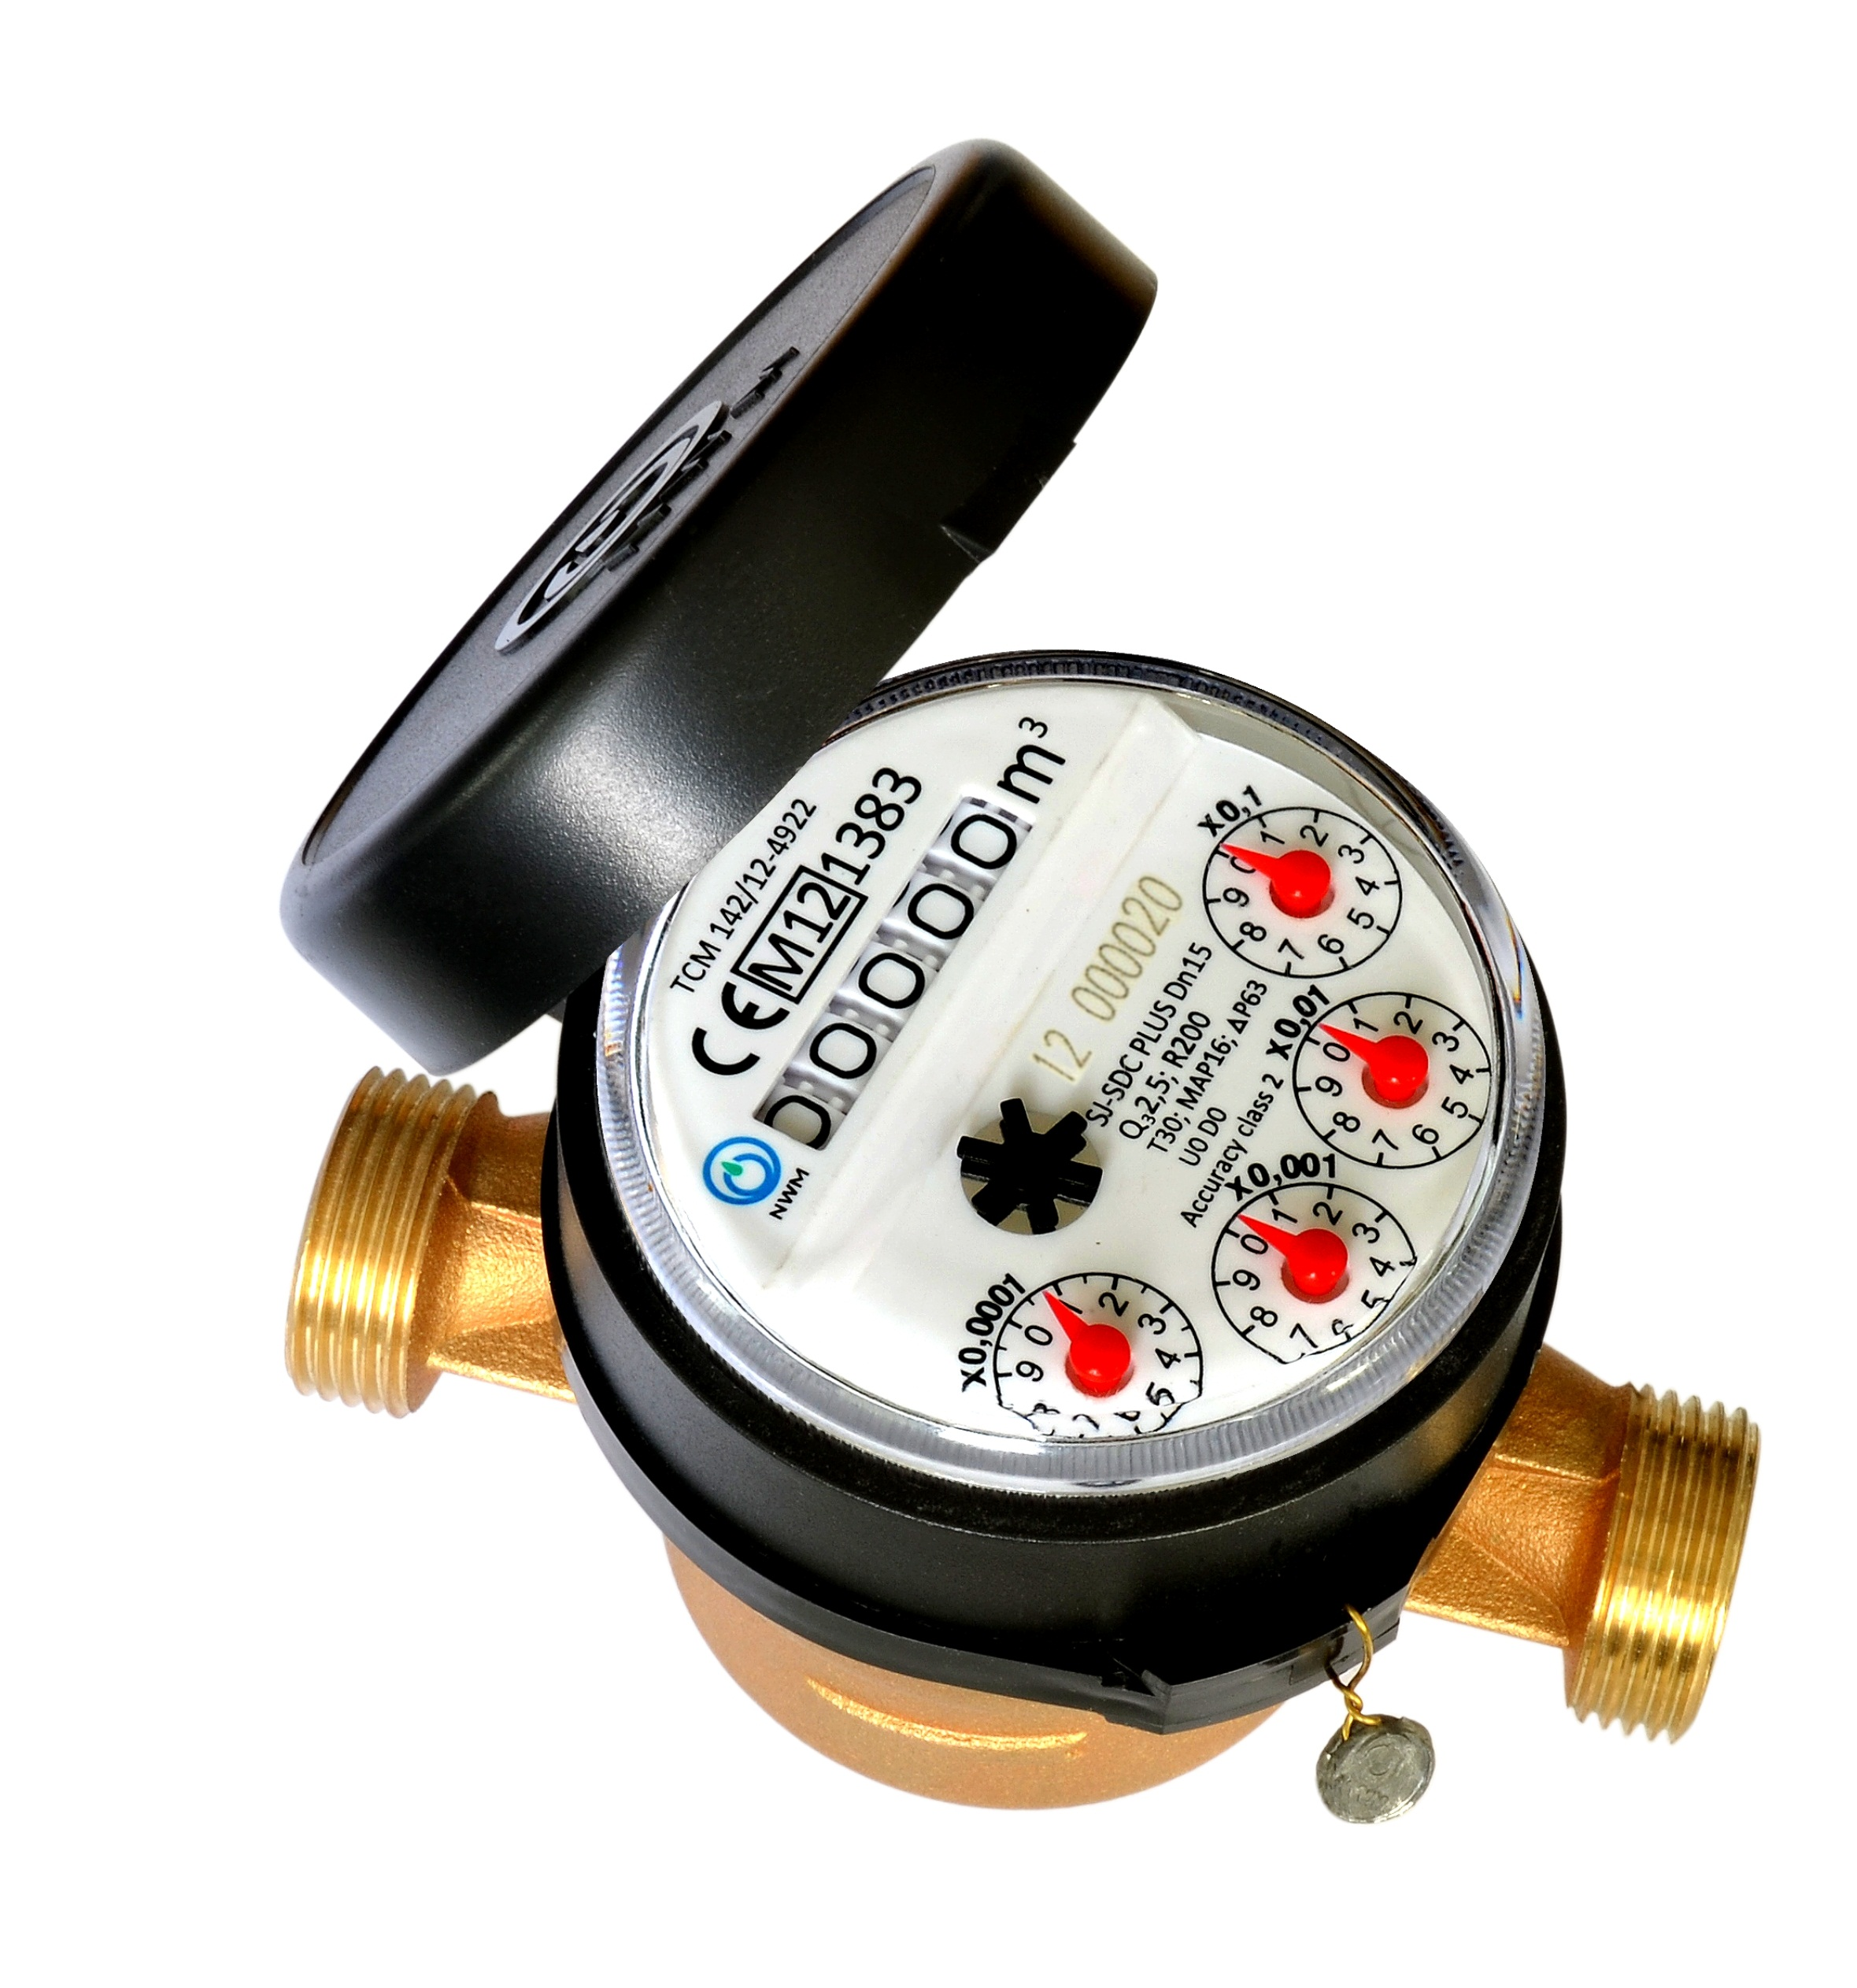 Single Jet Type AWWA Standard Water Meter Manufacturers, Single Jet Type AWWA Standard Water Meter Factory, Supply Single Jet Type AWWA Standard Water Meter